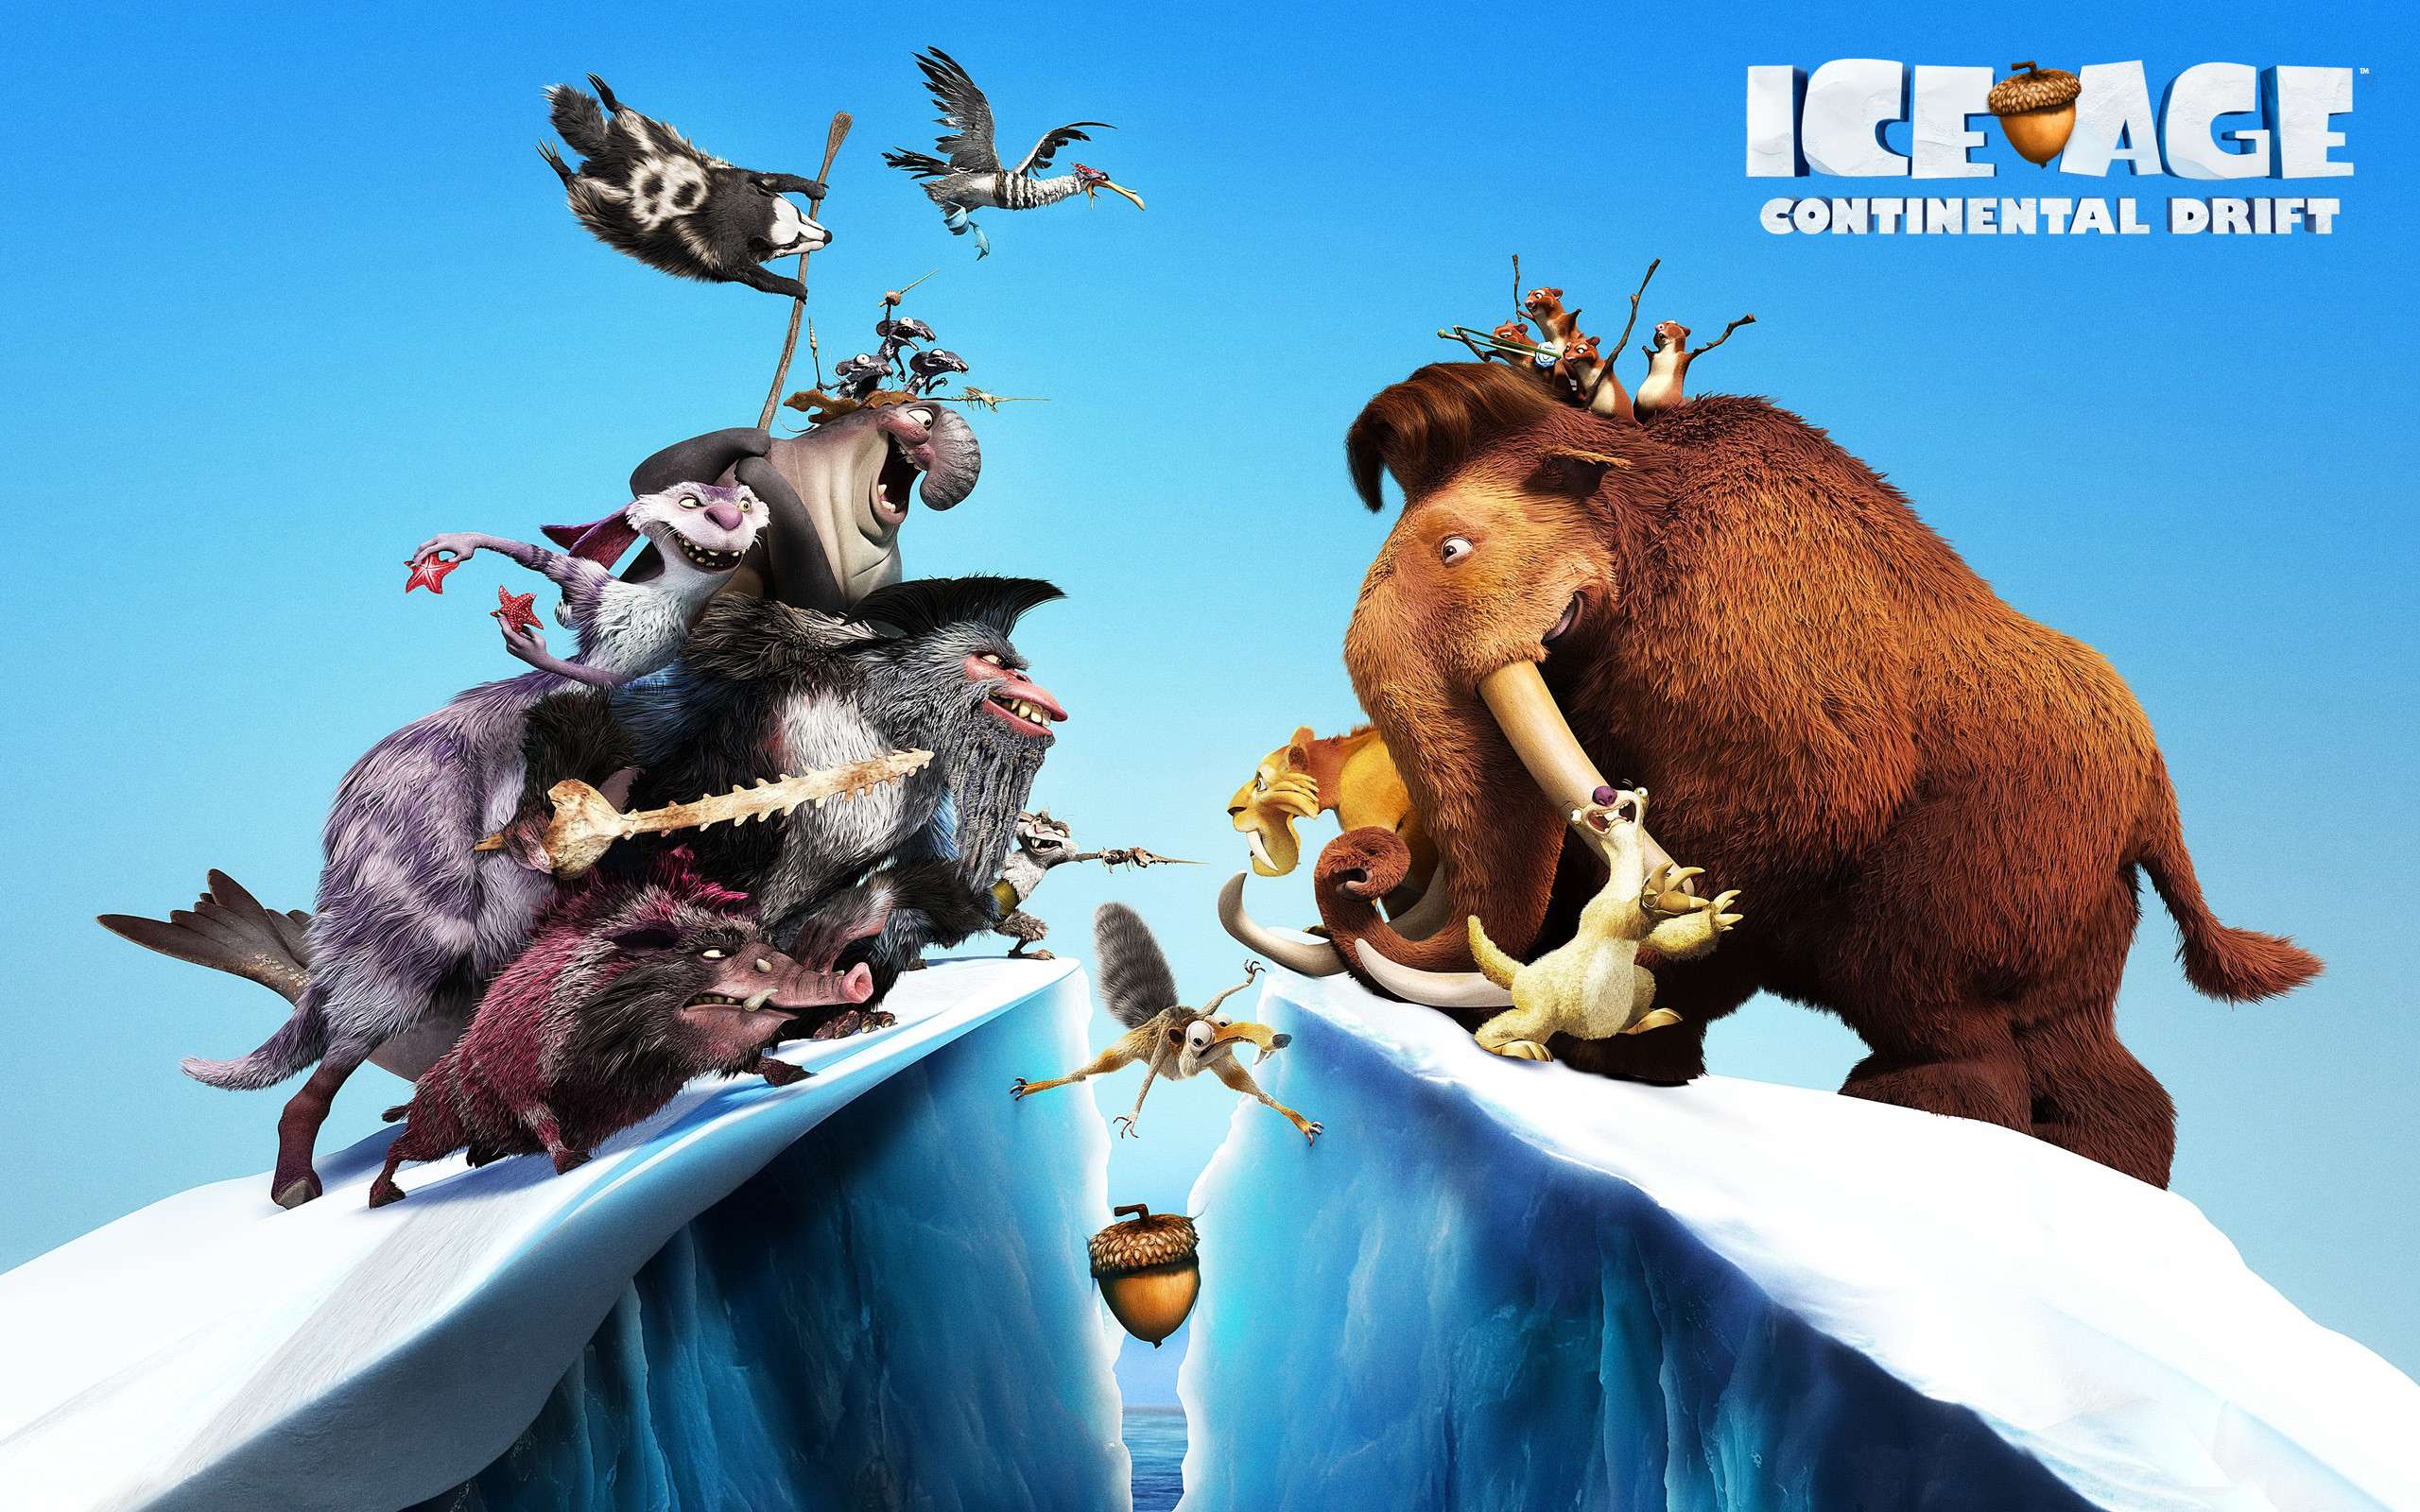 2560x1600 Ice Age 4 Continental Drift